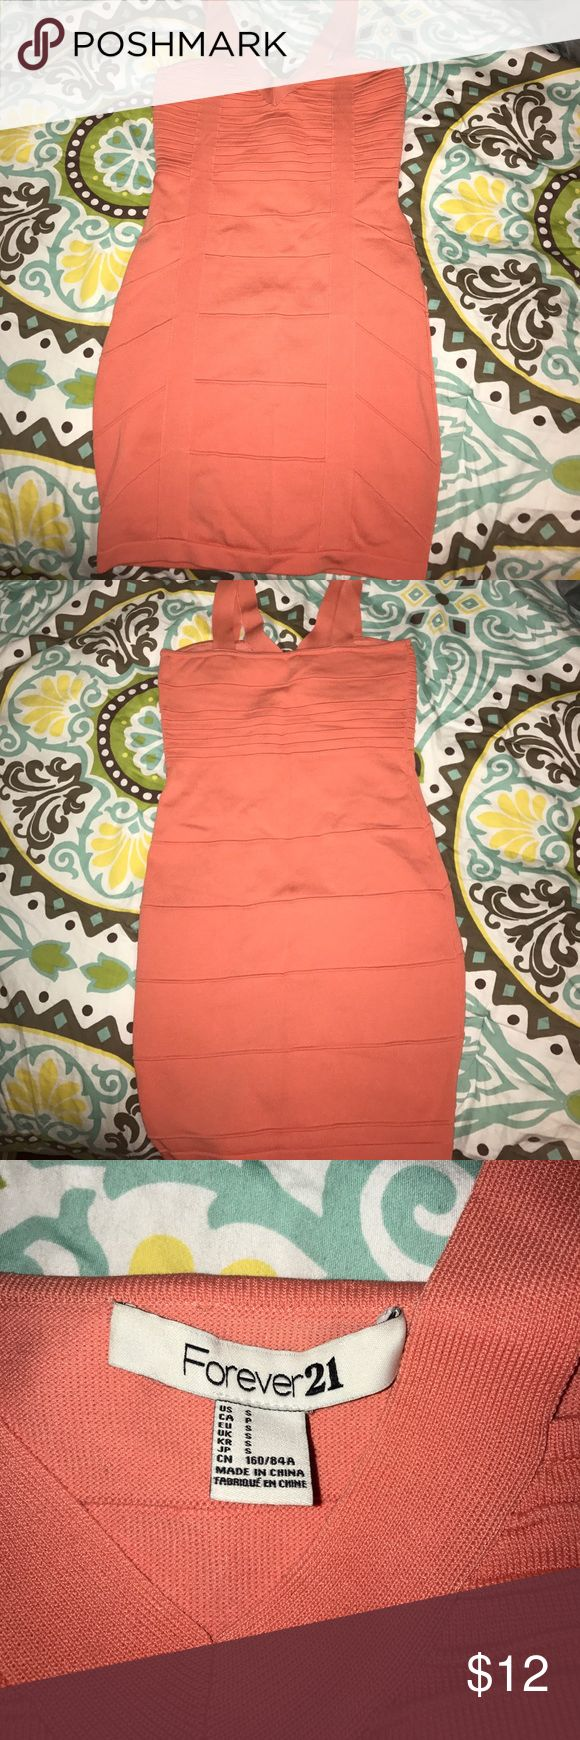 Bodycon style peach dress Tight Peach color dress size small. Worn once to an event. Really pretty color Forever 21 Dresses Mini